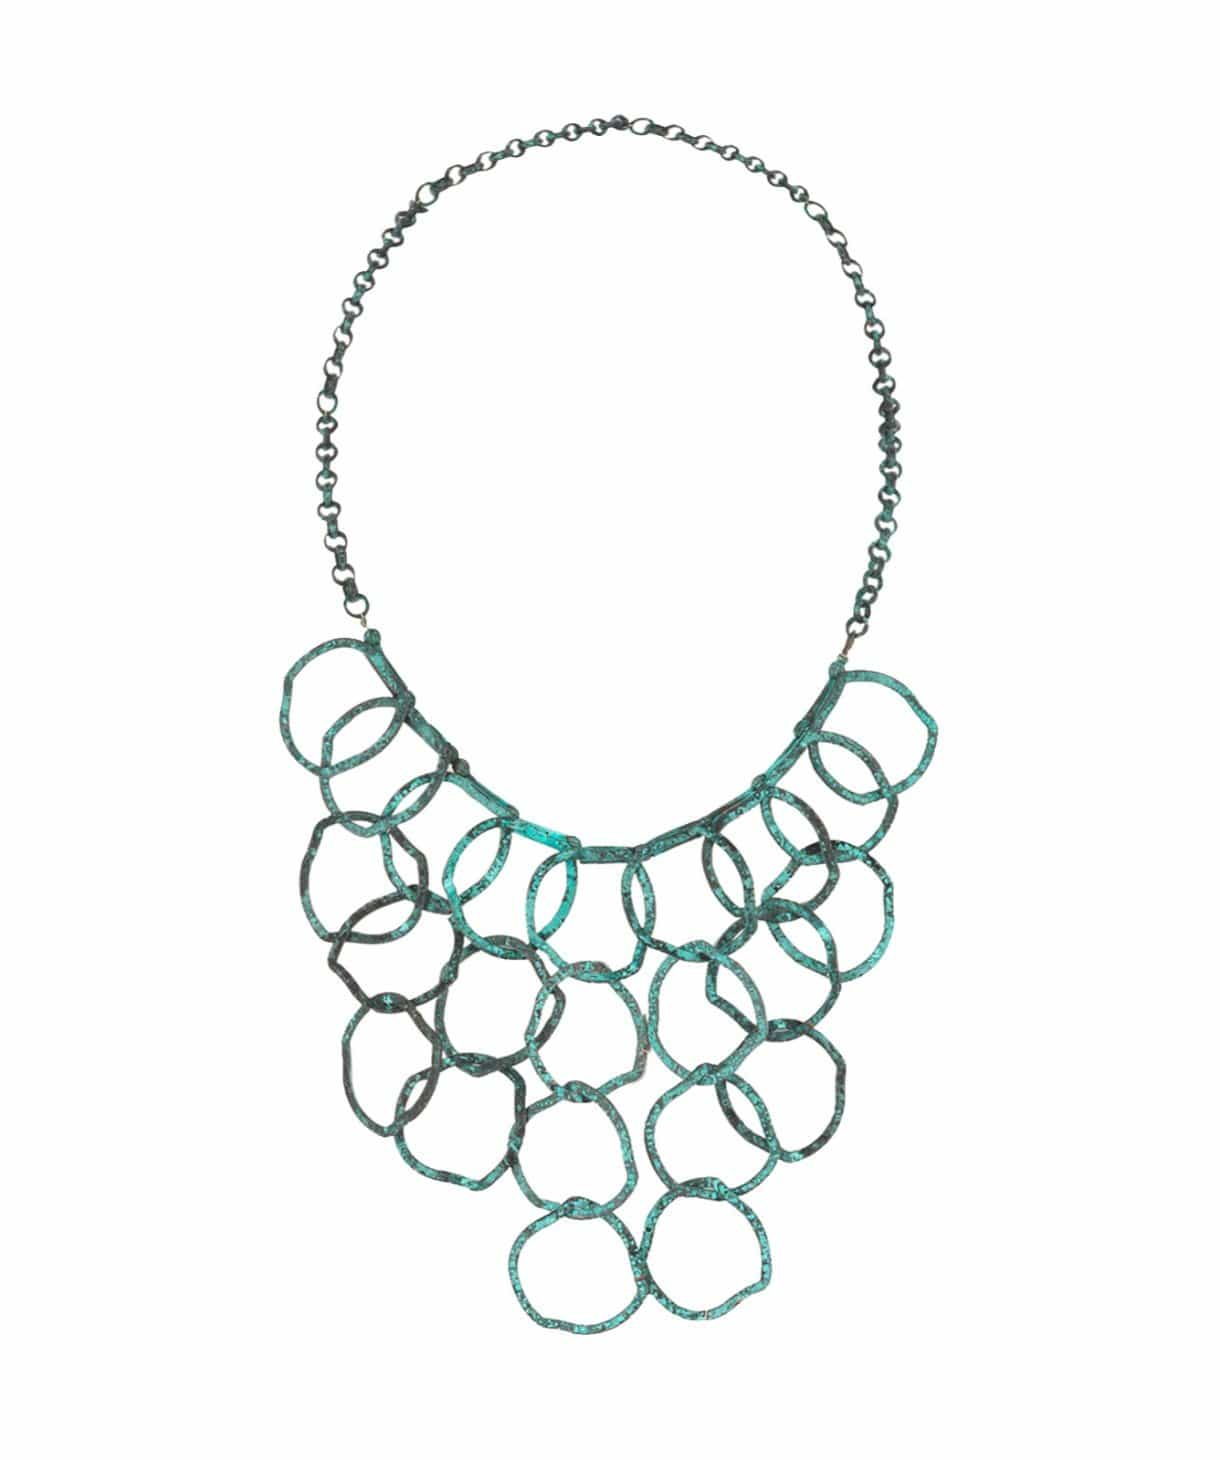 Ring Bib Necklace - Uptownie